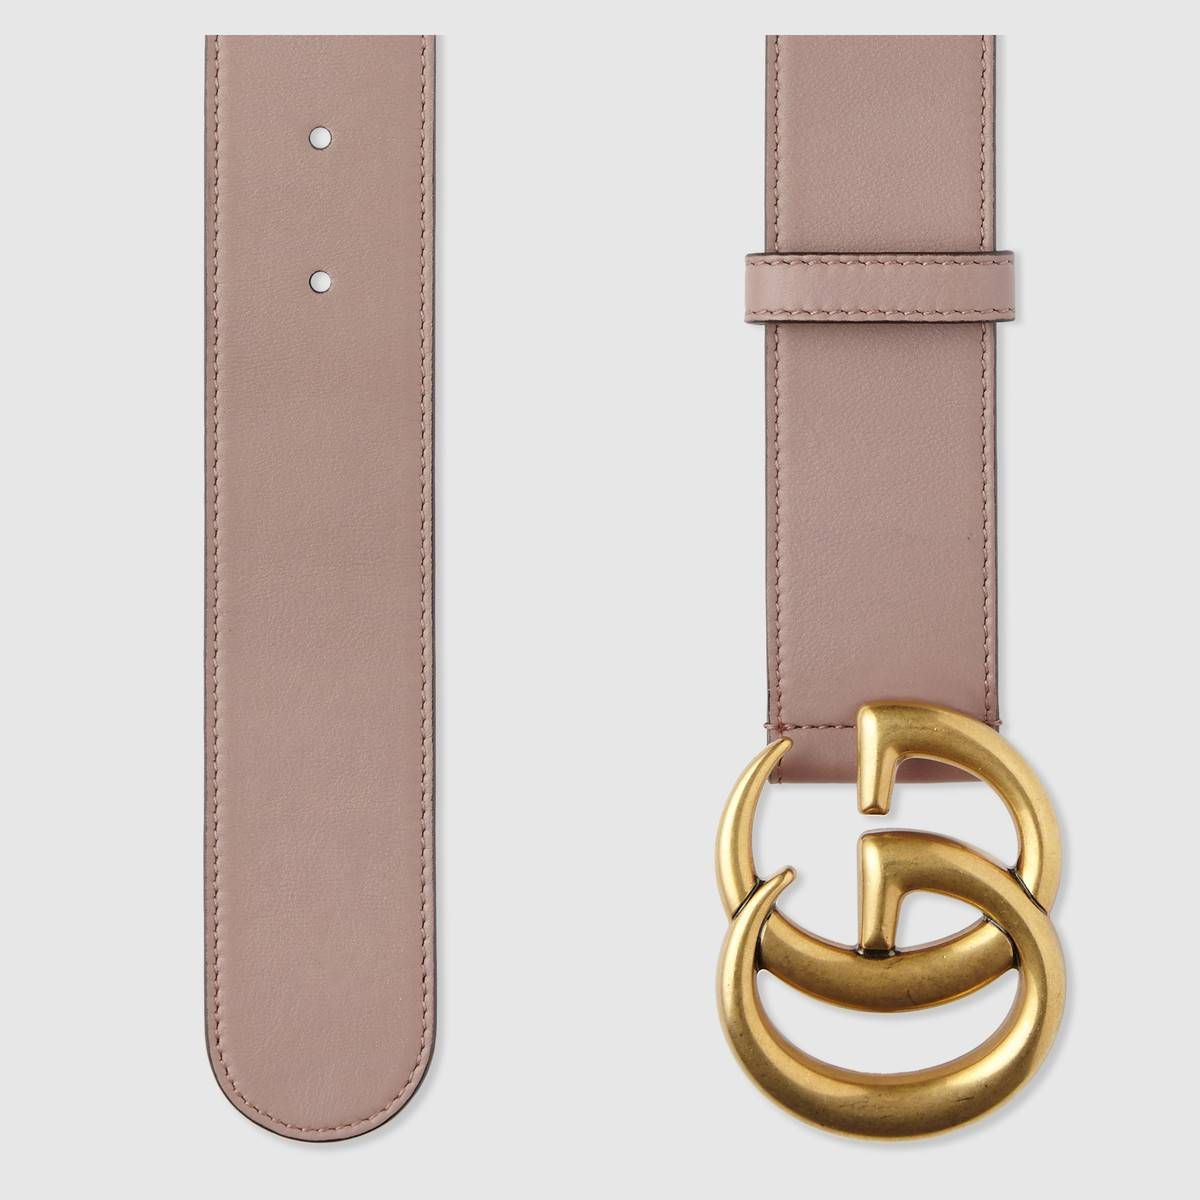 b28efa9afb0 Shop the Leather belt with Double G buckle by Gucci. A leather belt with Double  G buckle.